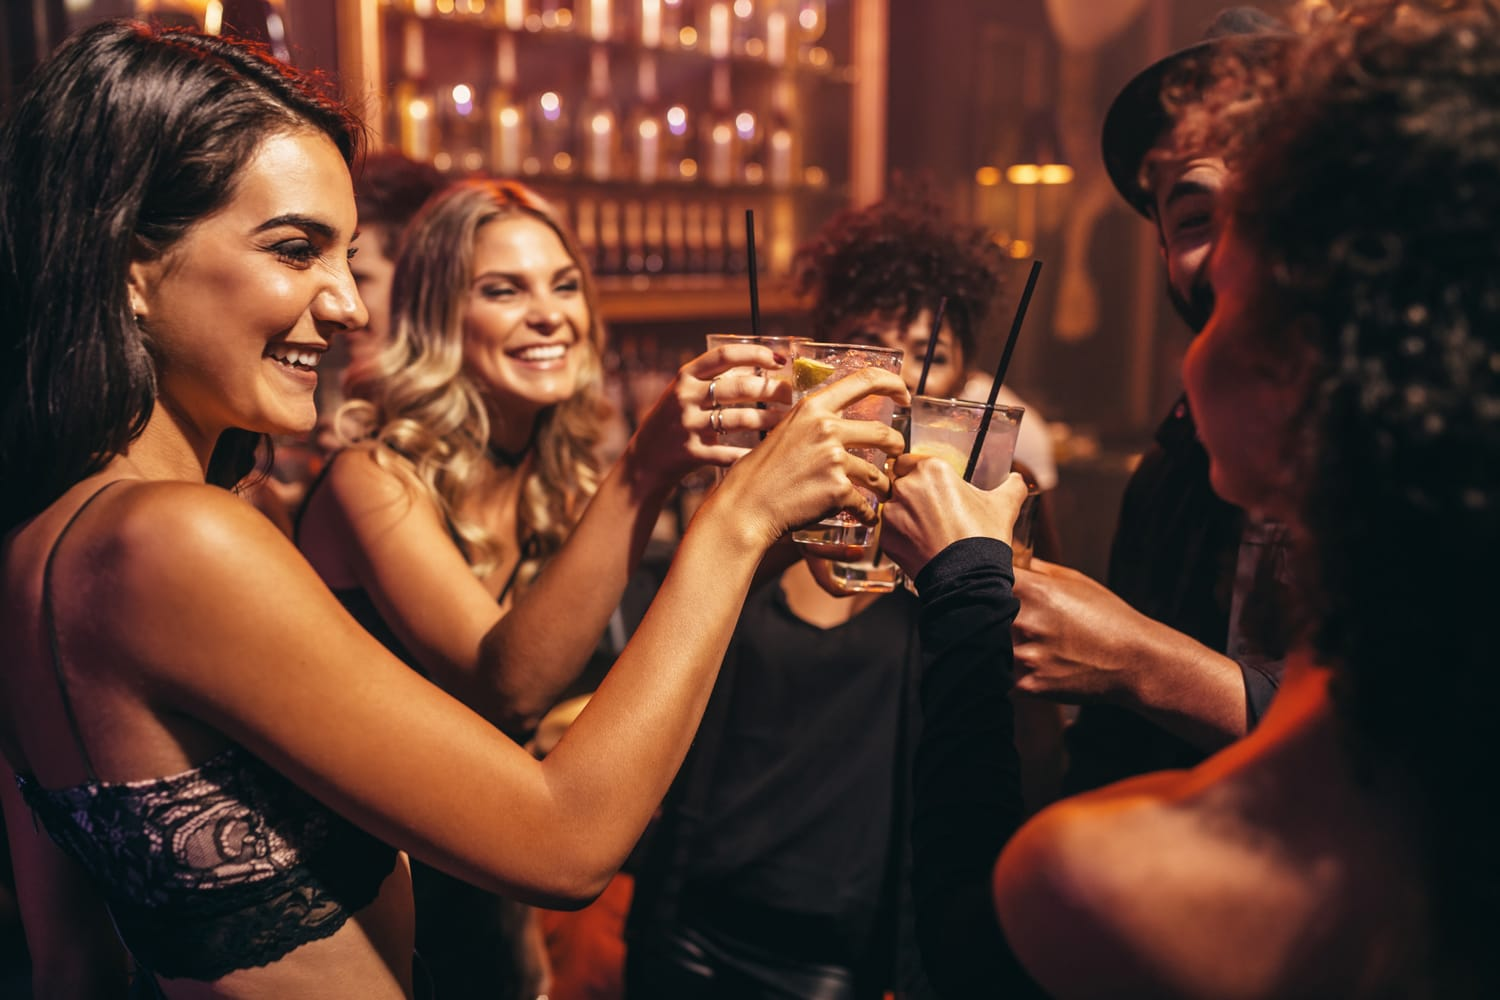 Group of young people with cocktails at nightclub